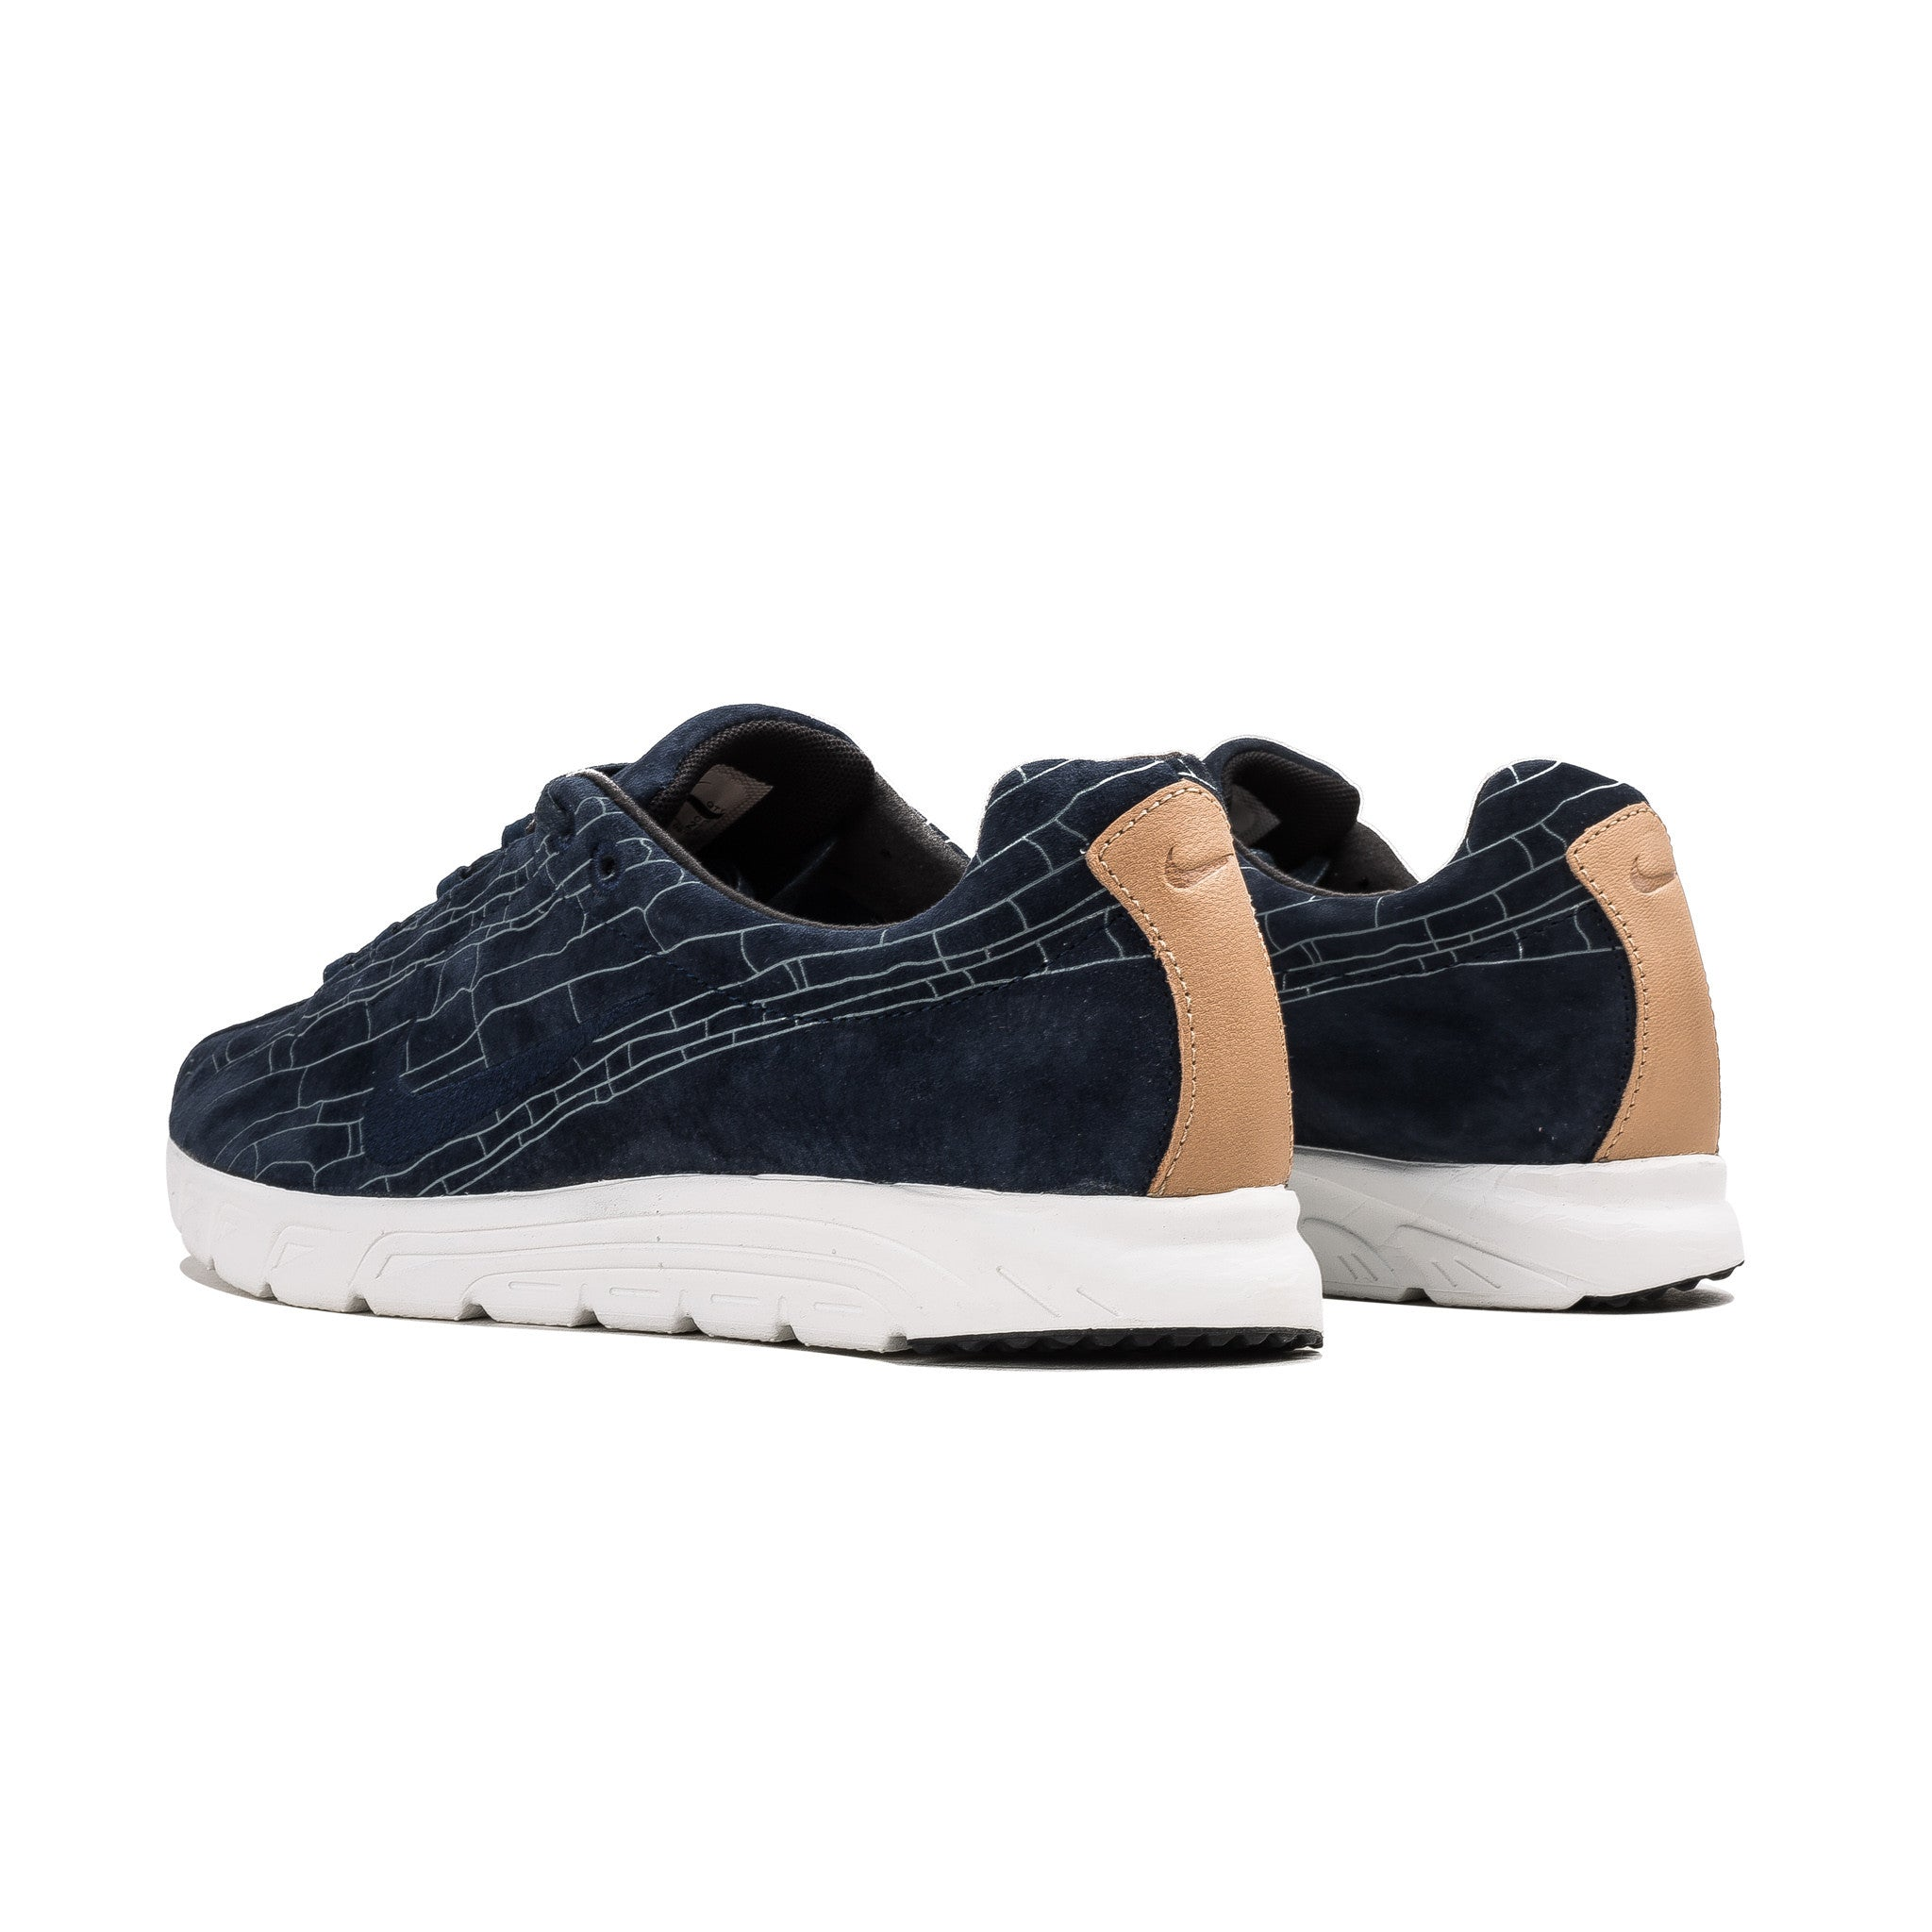 Nike Mayfly Leather PRM 816548-400